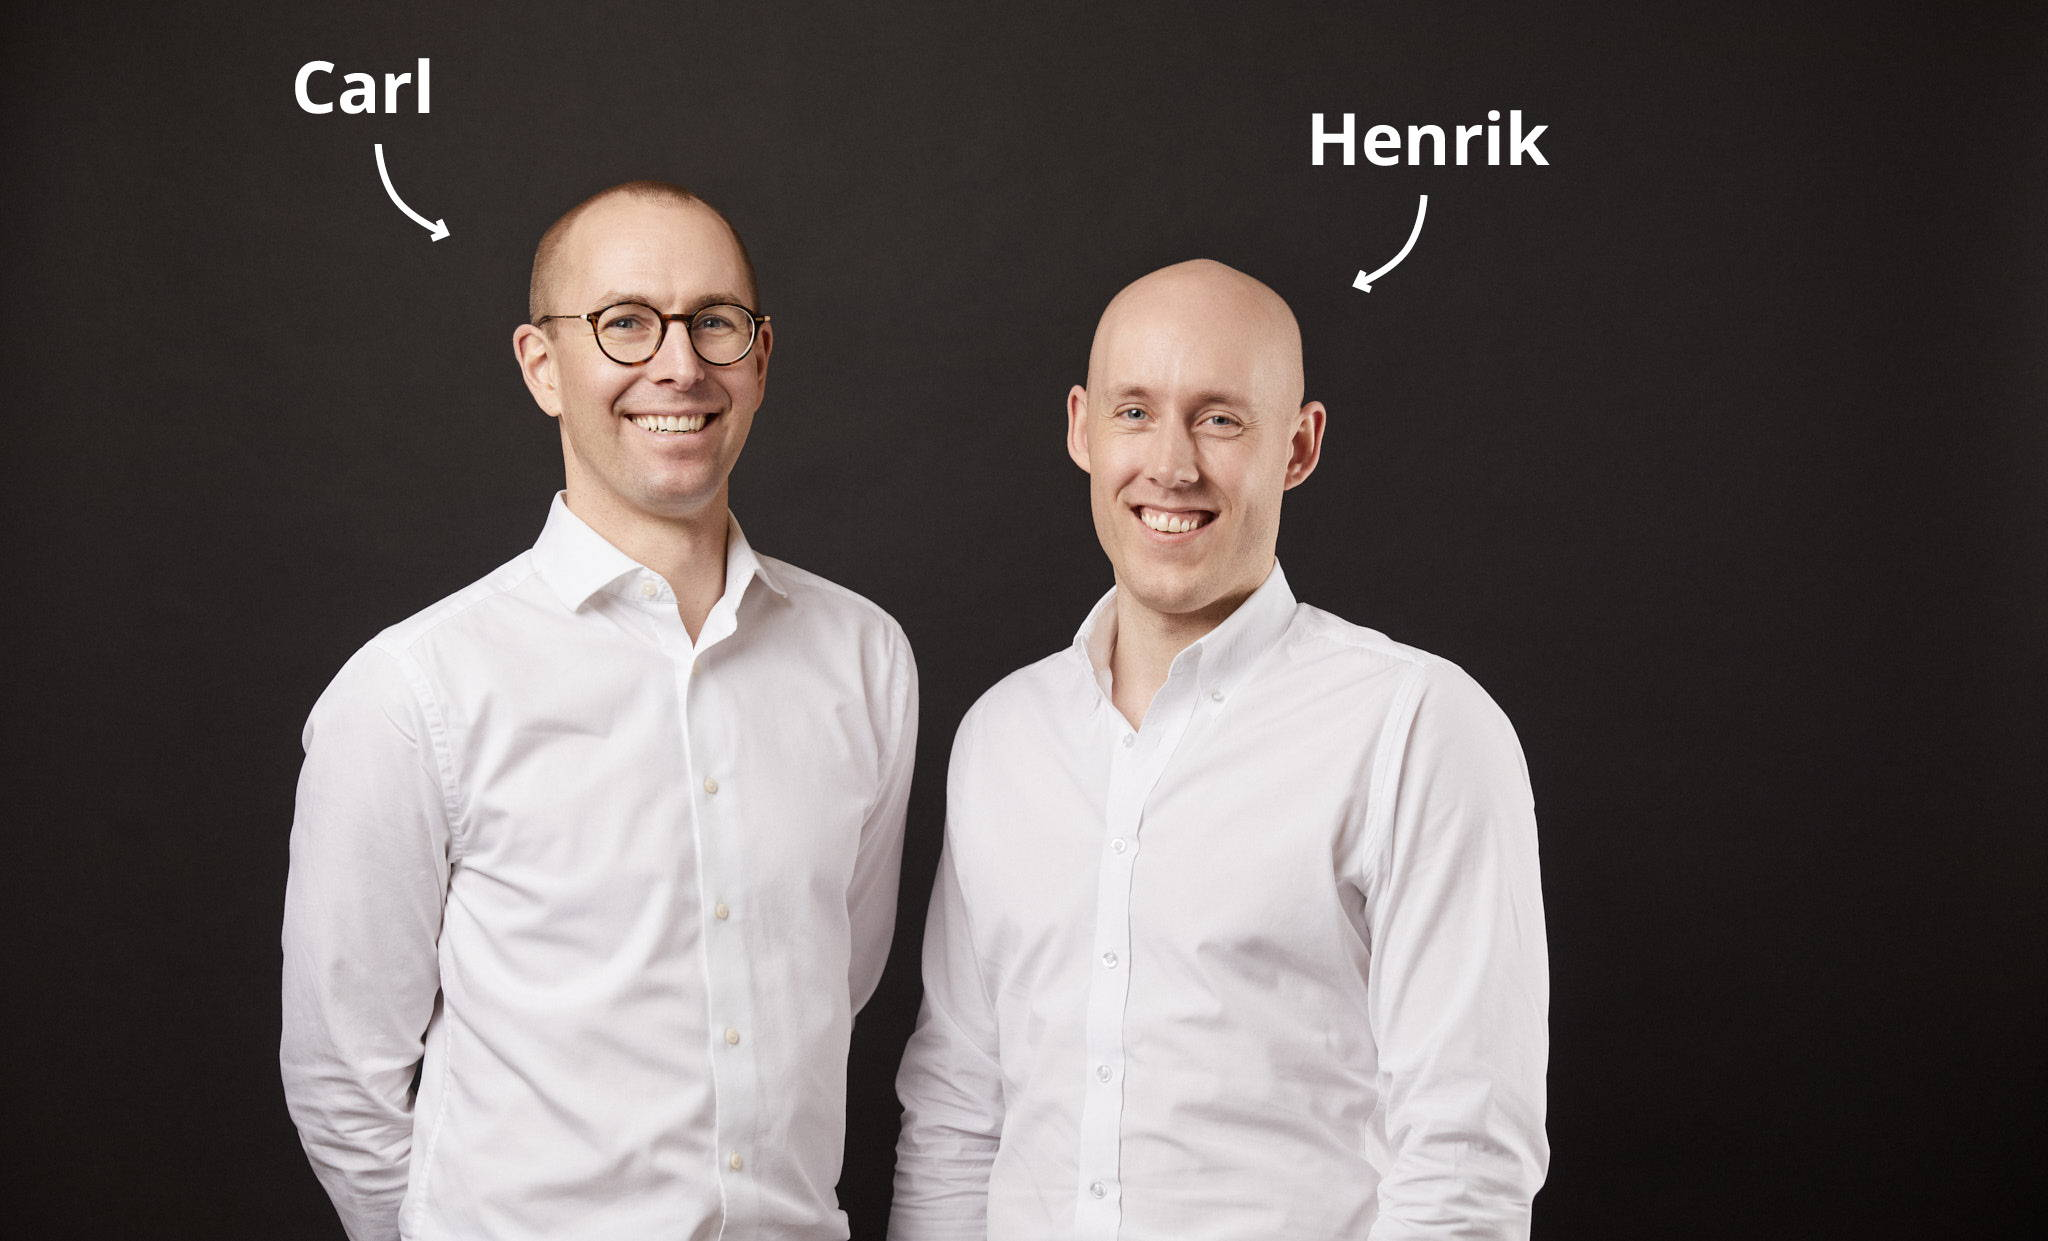 Plegium's founders, Carl Ljung and Henrik Frisk